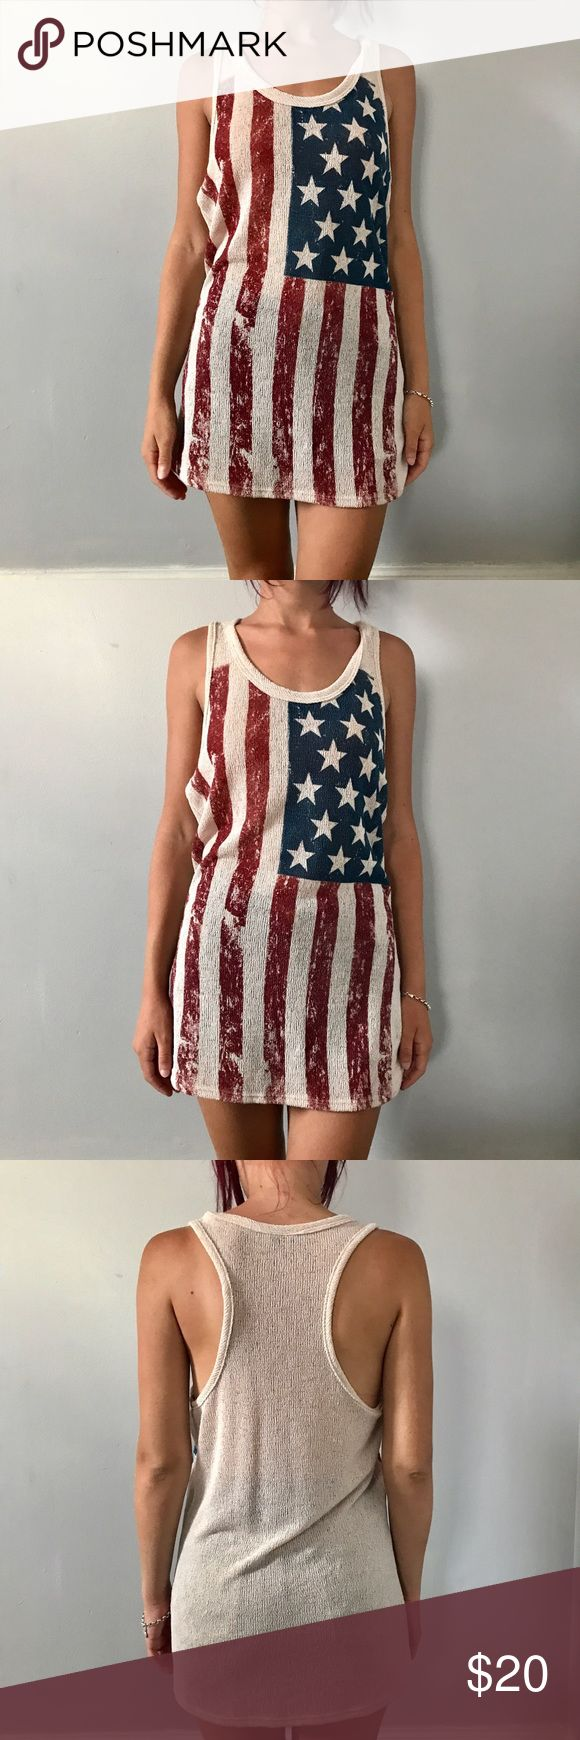 American flag dress/top American flag sweater material dress or could be worn as a top!! free kiss Tops